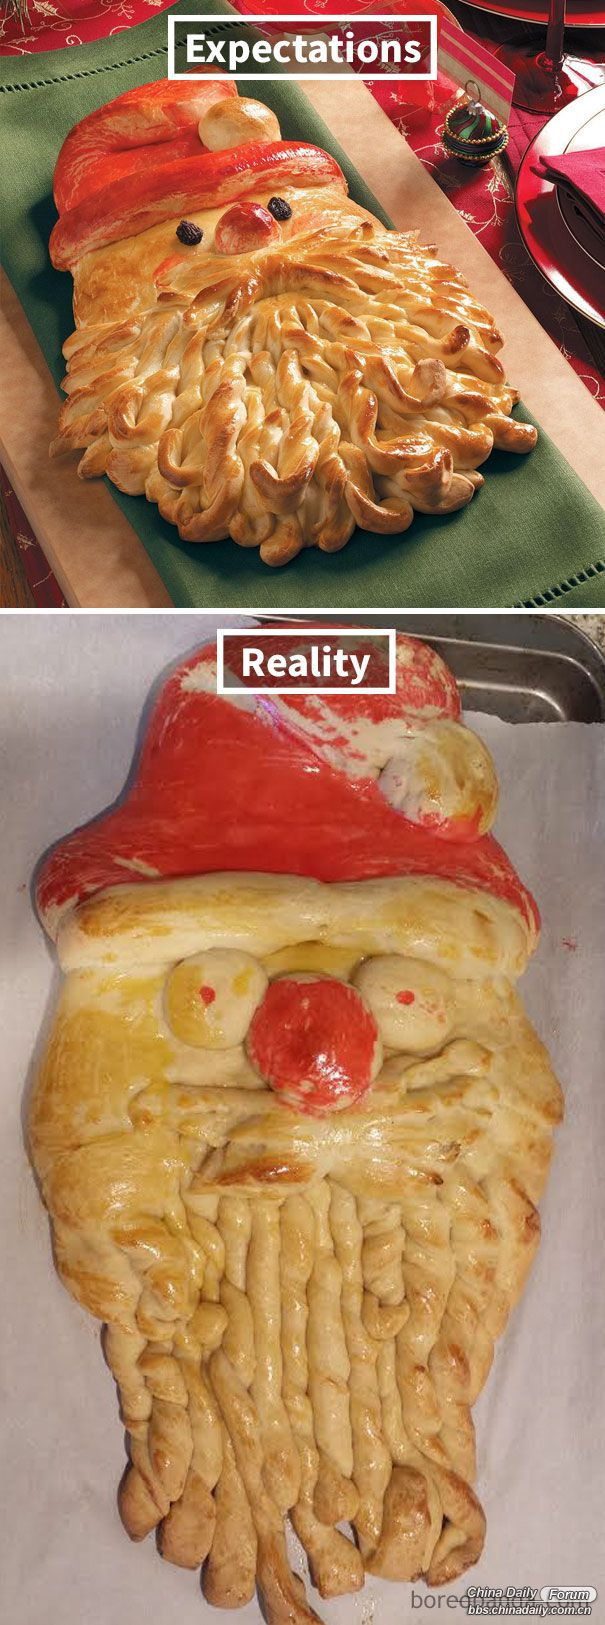 funny-food-fails-expectations-vs-reality-104-5a5320a436393__605.jpg